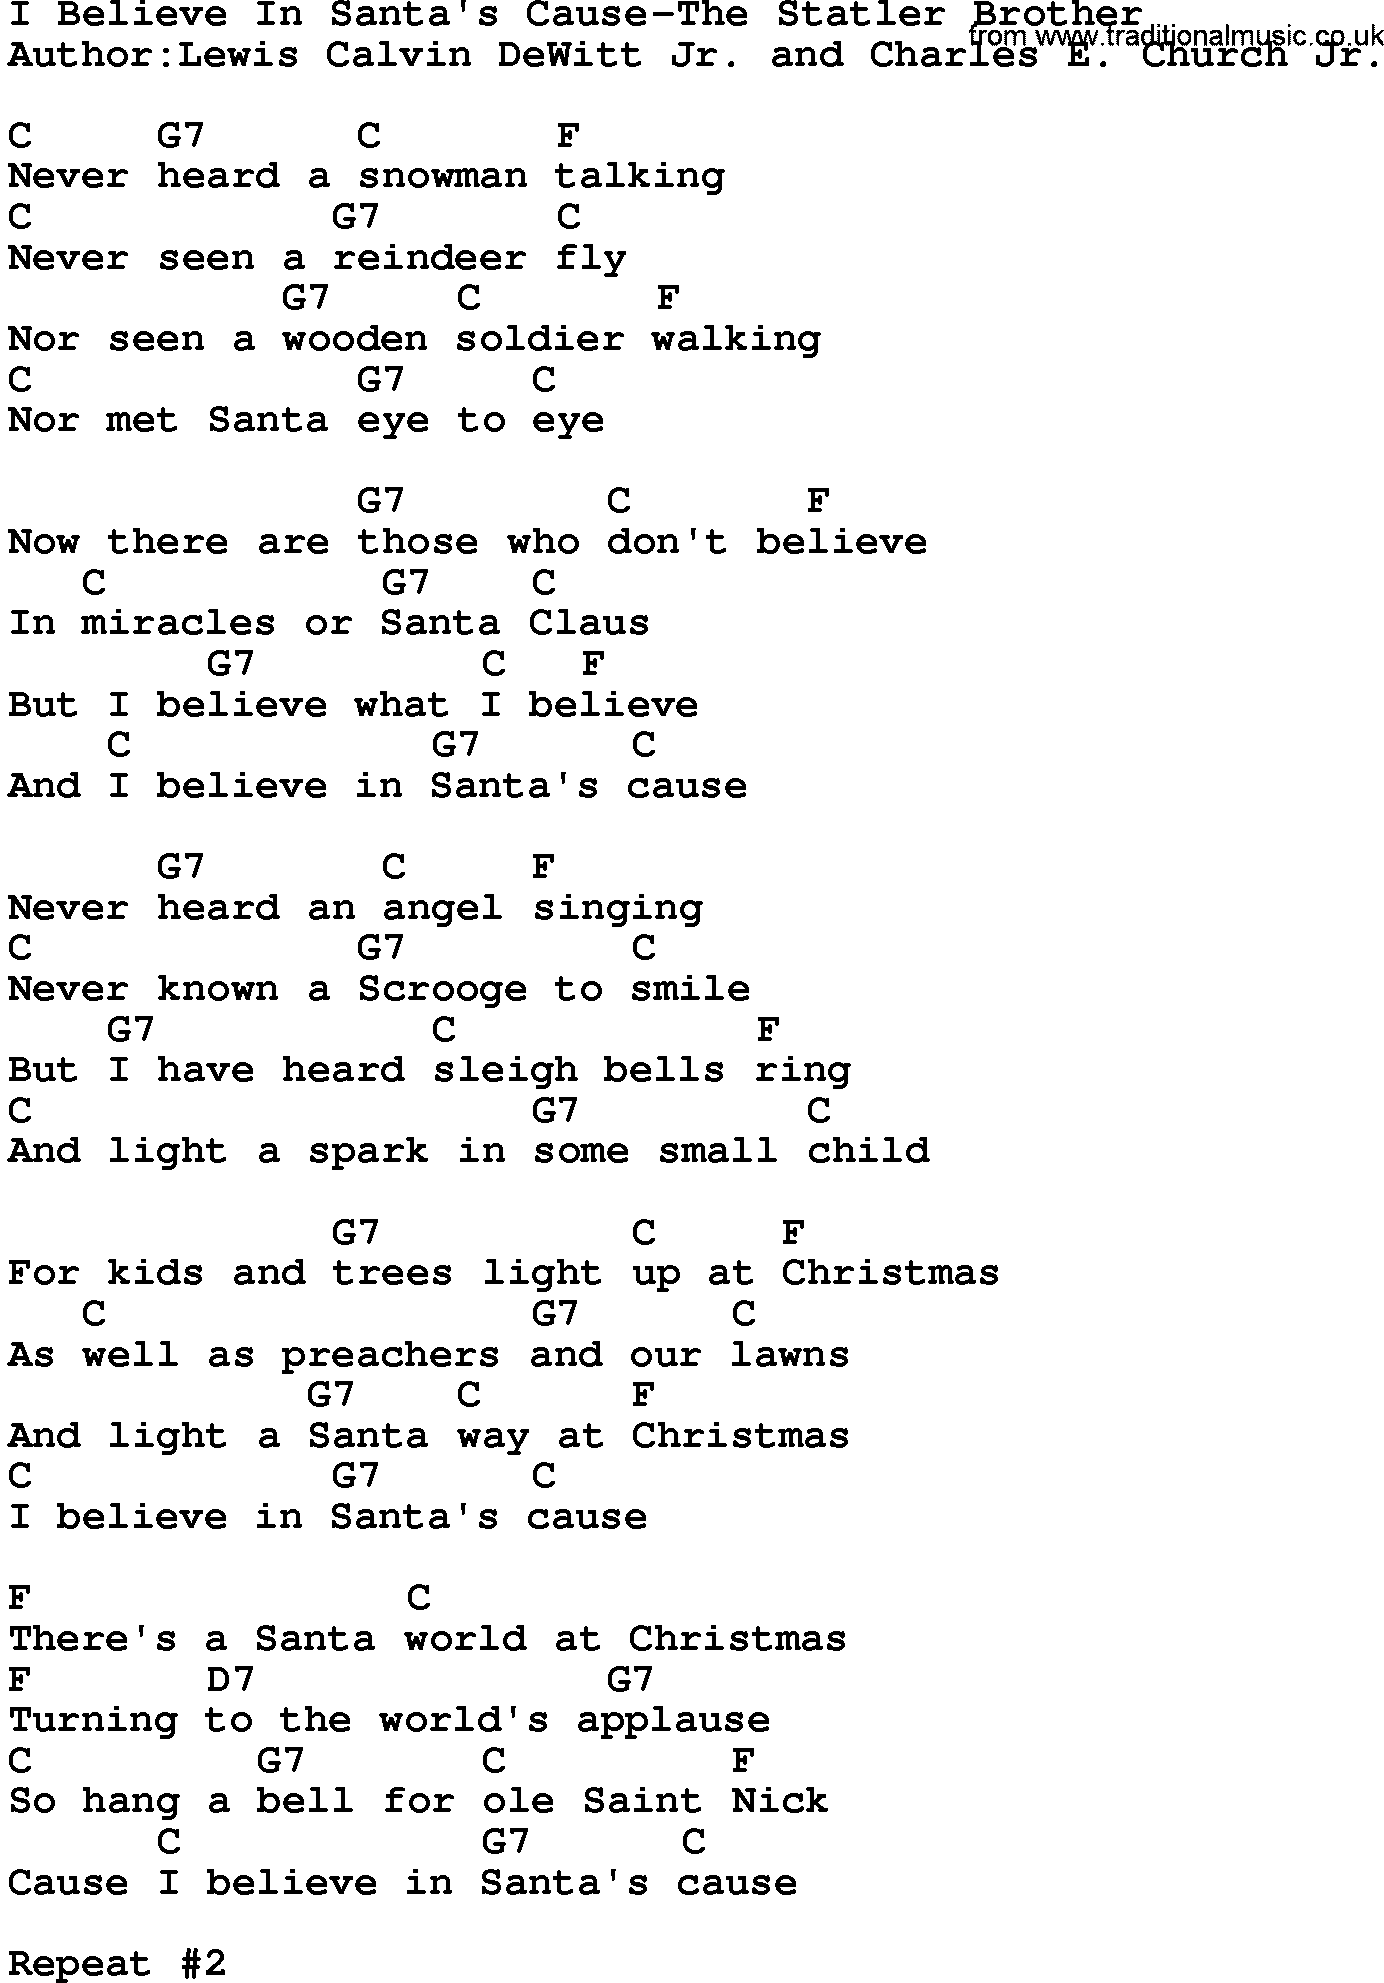 country musici believe in santas cause the statler brother lyrics and chords - Believe Christmas Song